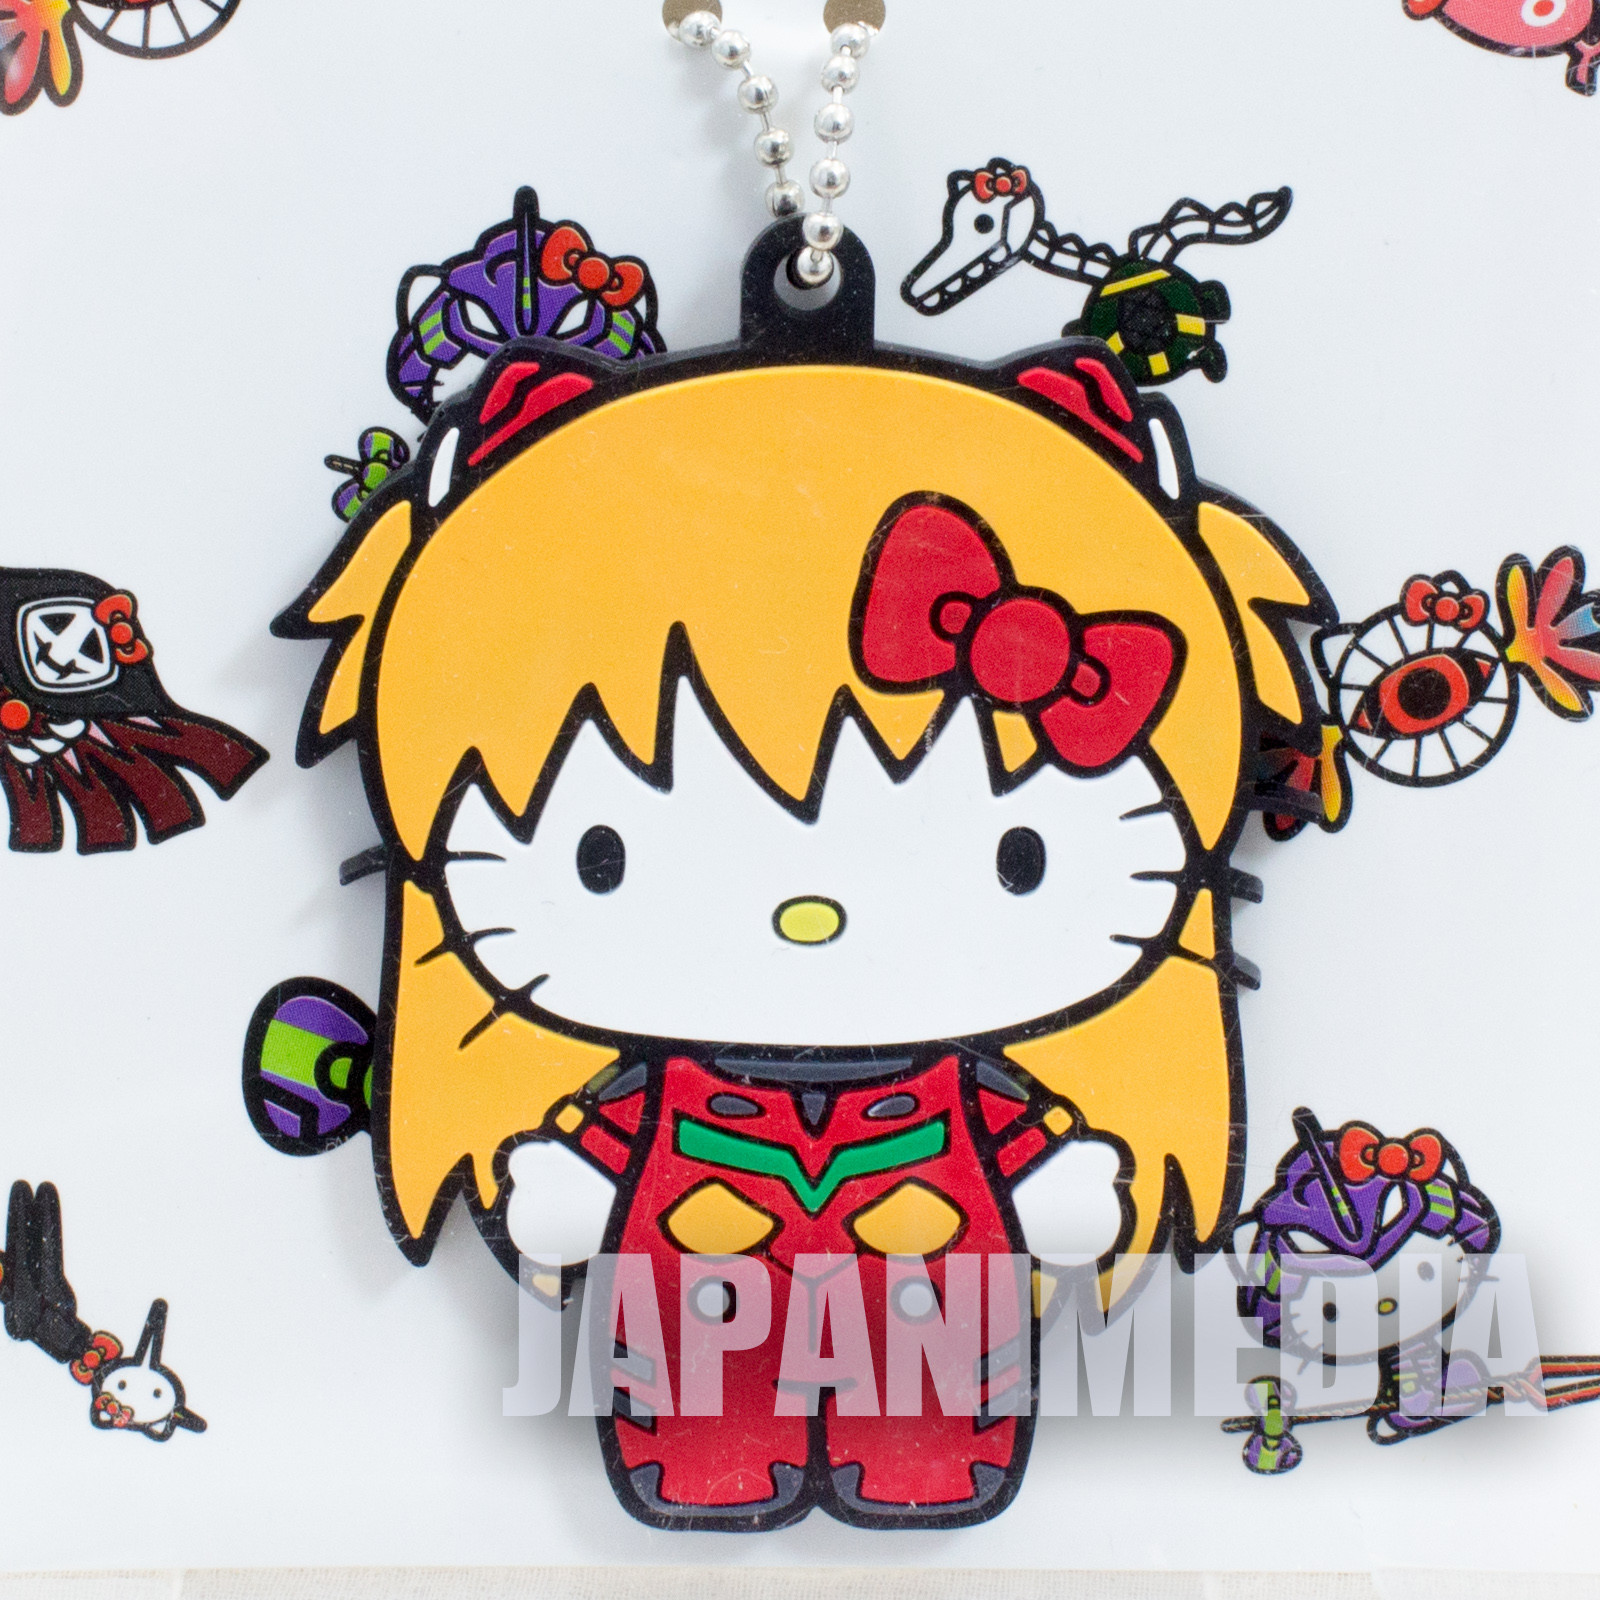 Evangelion x Hello Kitty Asuka Langley Rubber Mascot Ballchain JAPAN ANIME MANGA